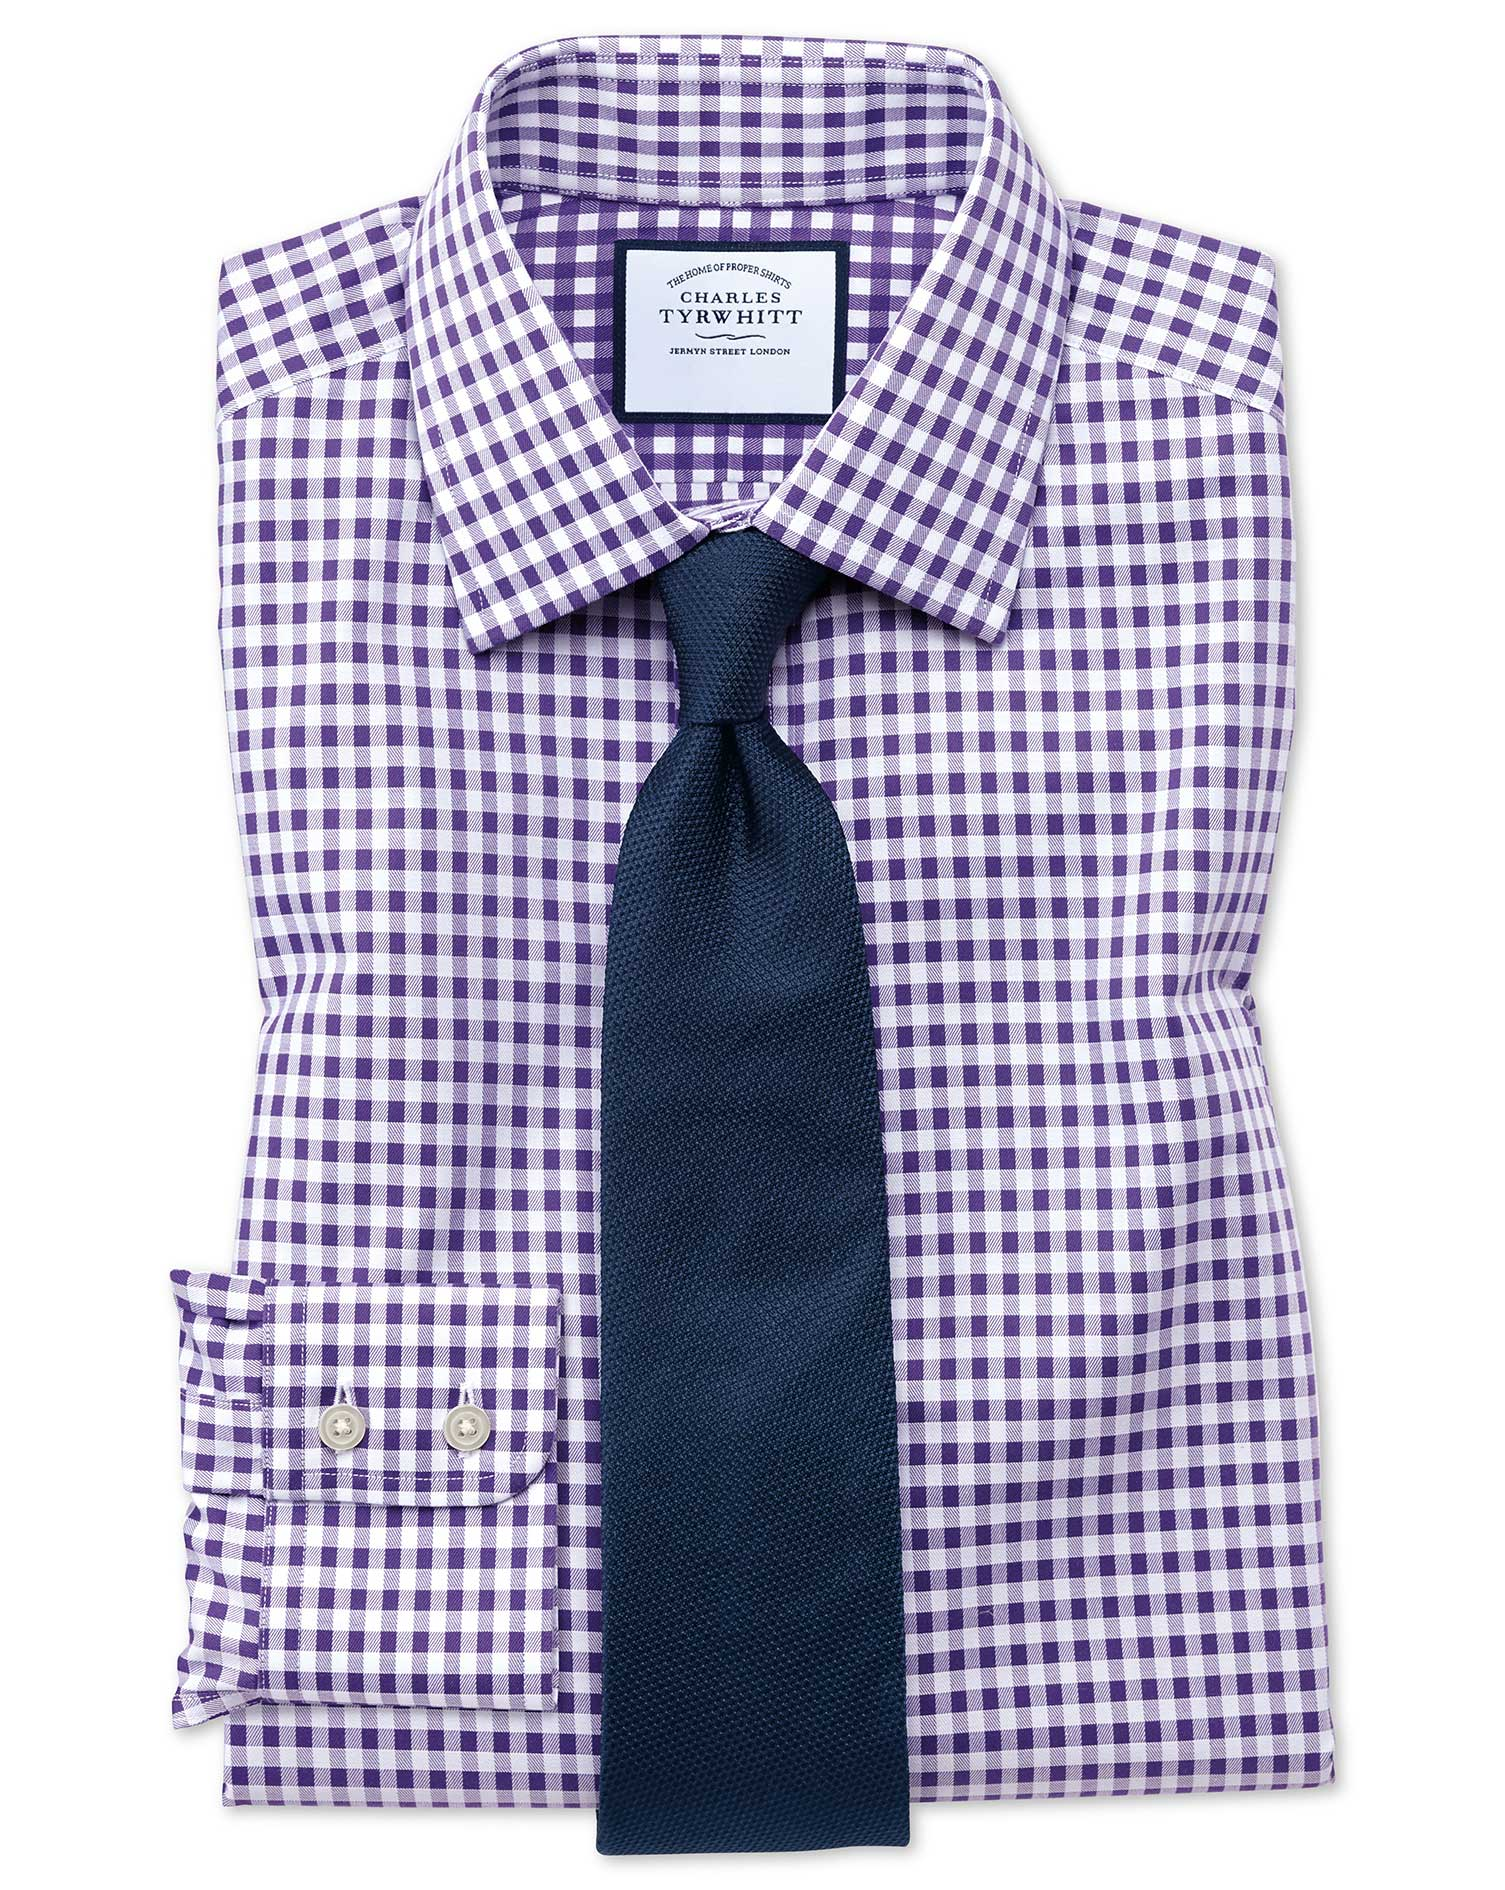 Slim Fit Non-Iron Gingham Purple Cotton Formal Shirt Single Cuff Size 15.5/37 by Charles Tyrwhitt